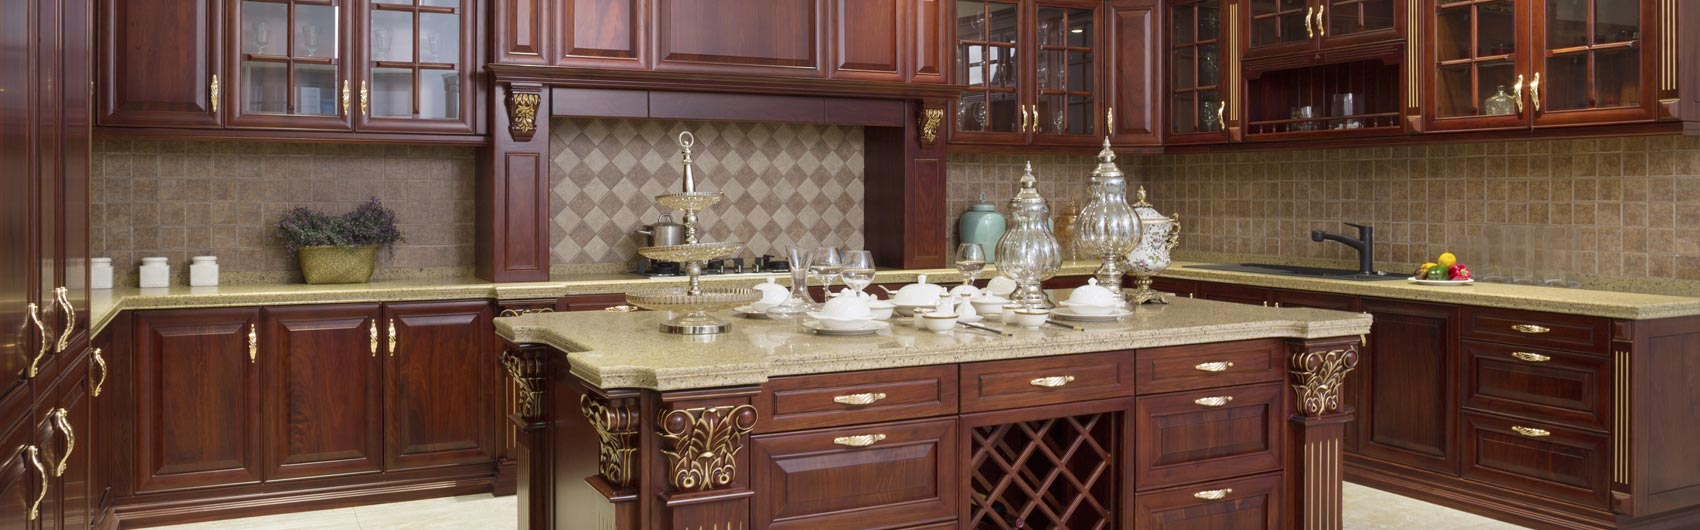 High Quality Cabinet Finishes